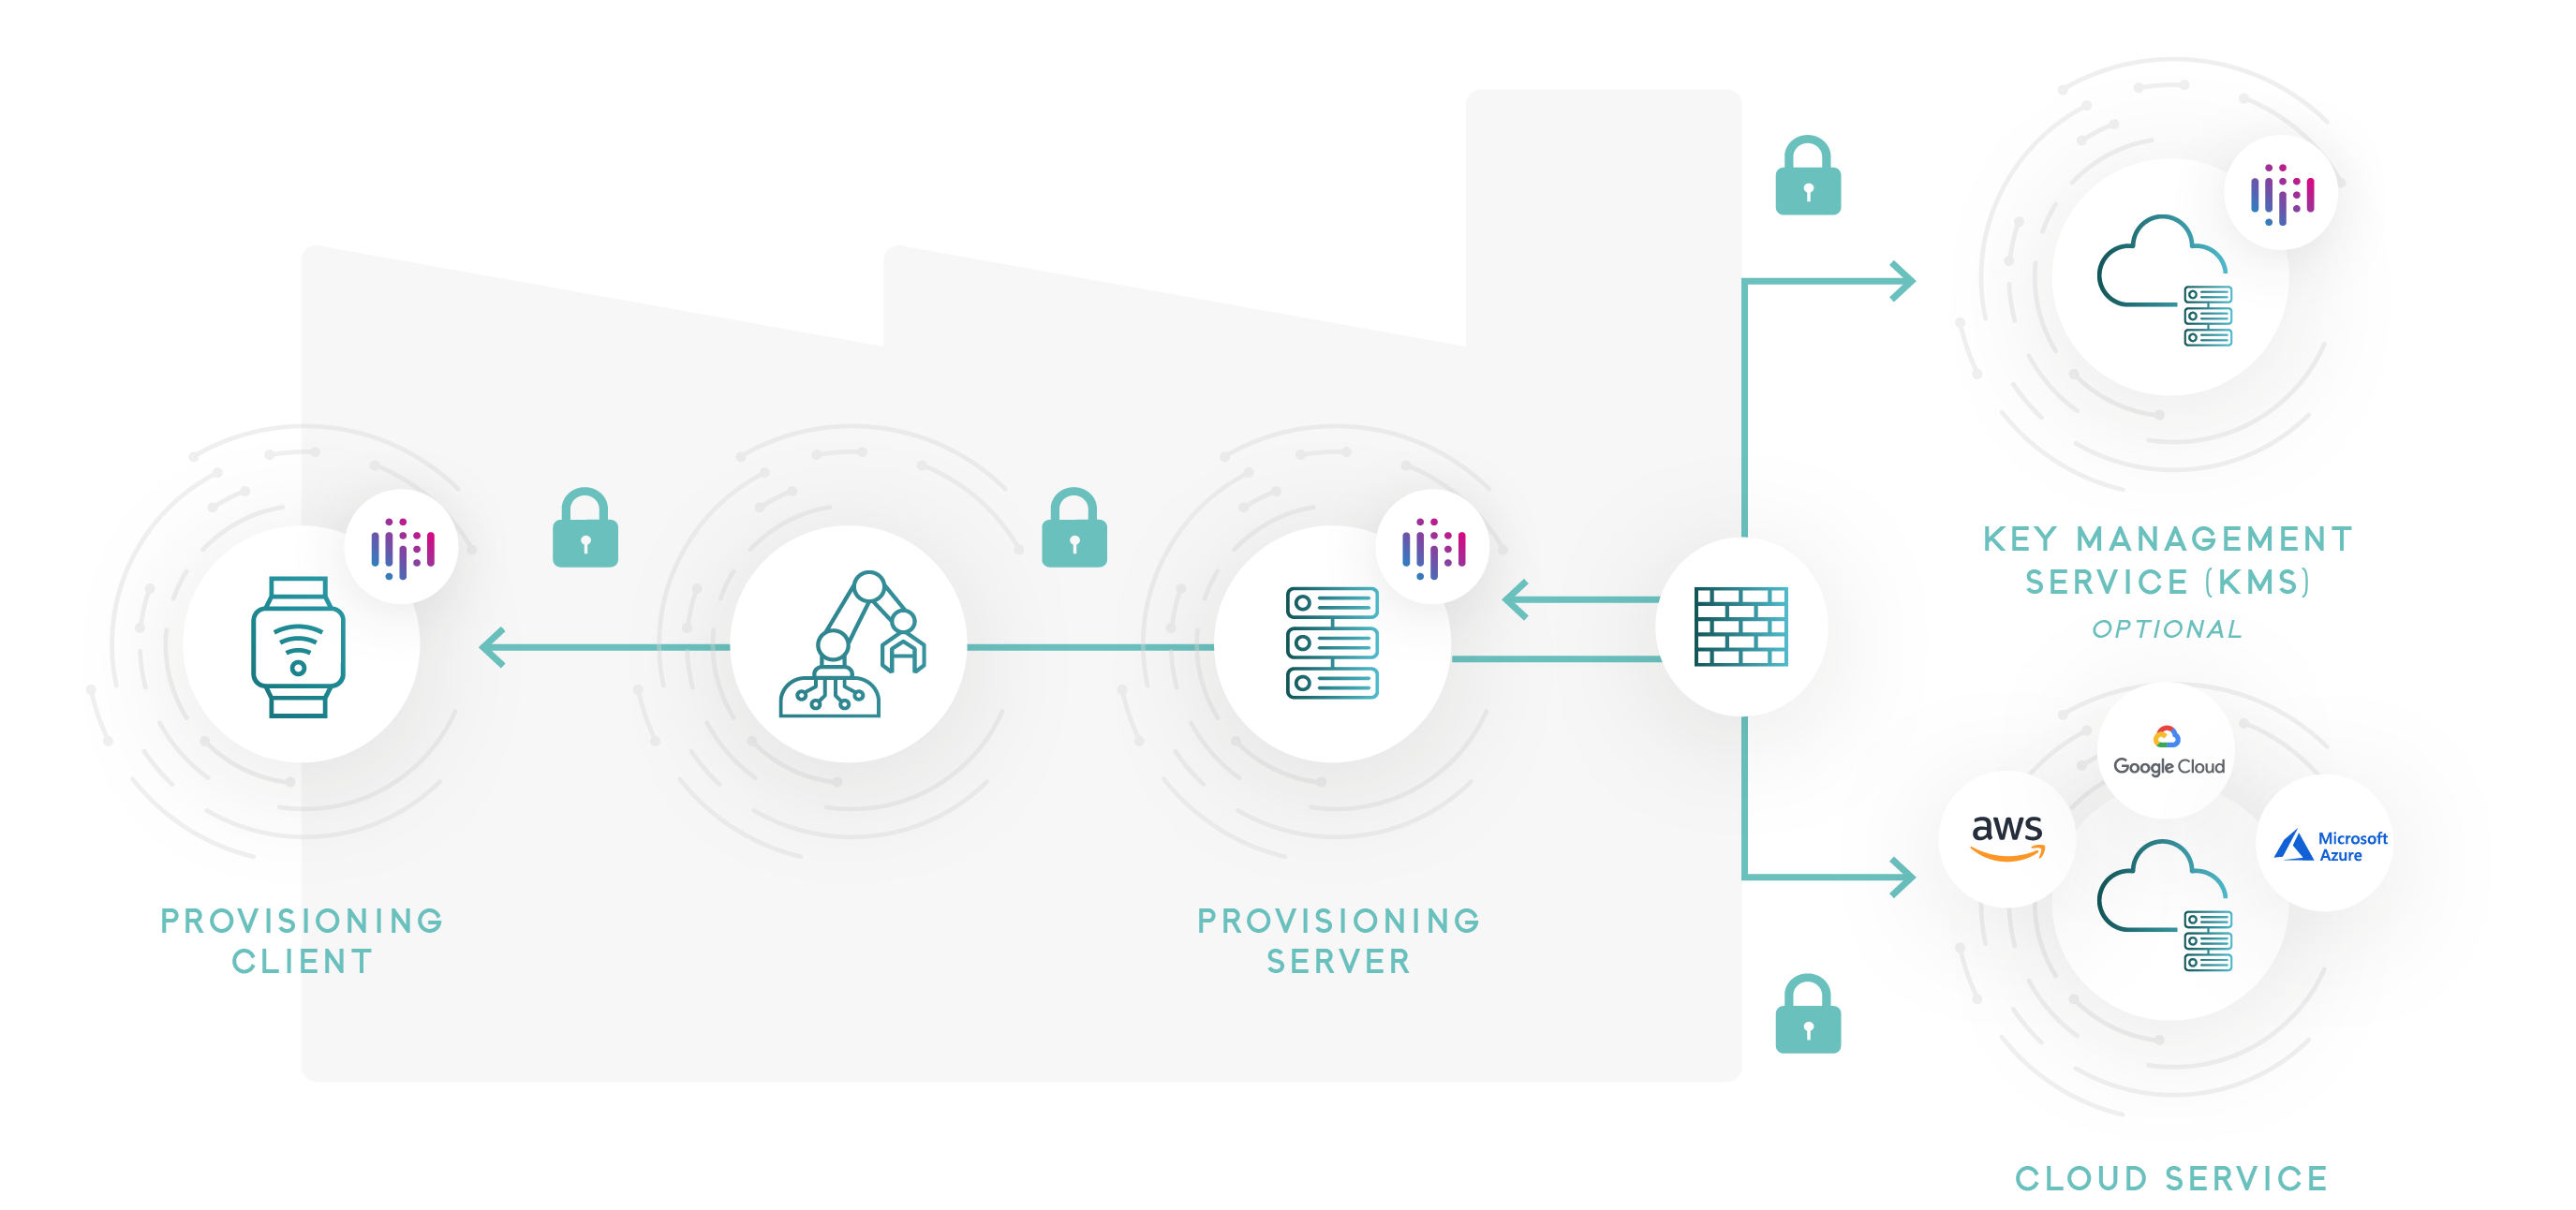 Flexible provisioning for IOT